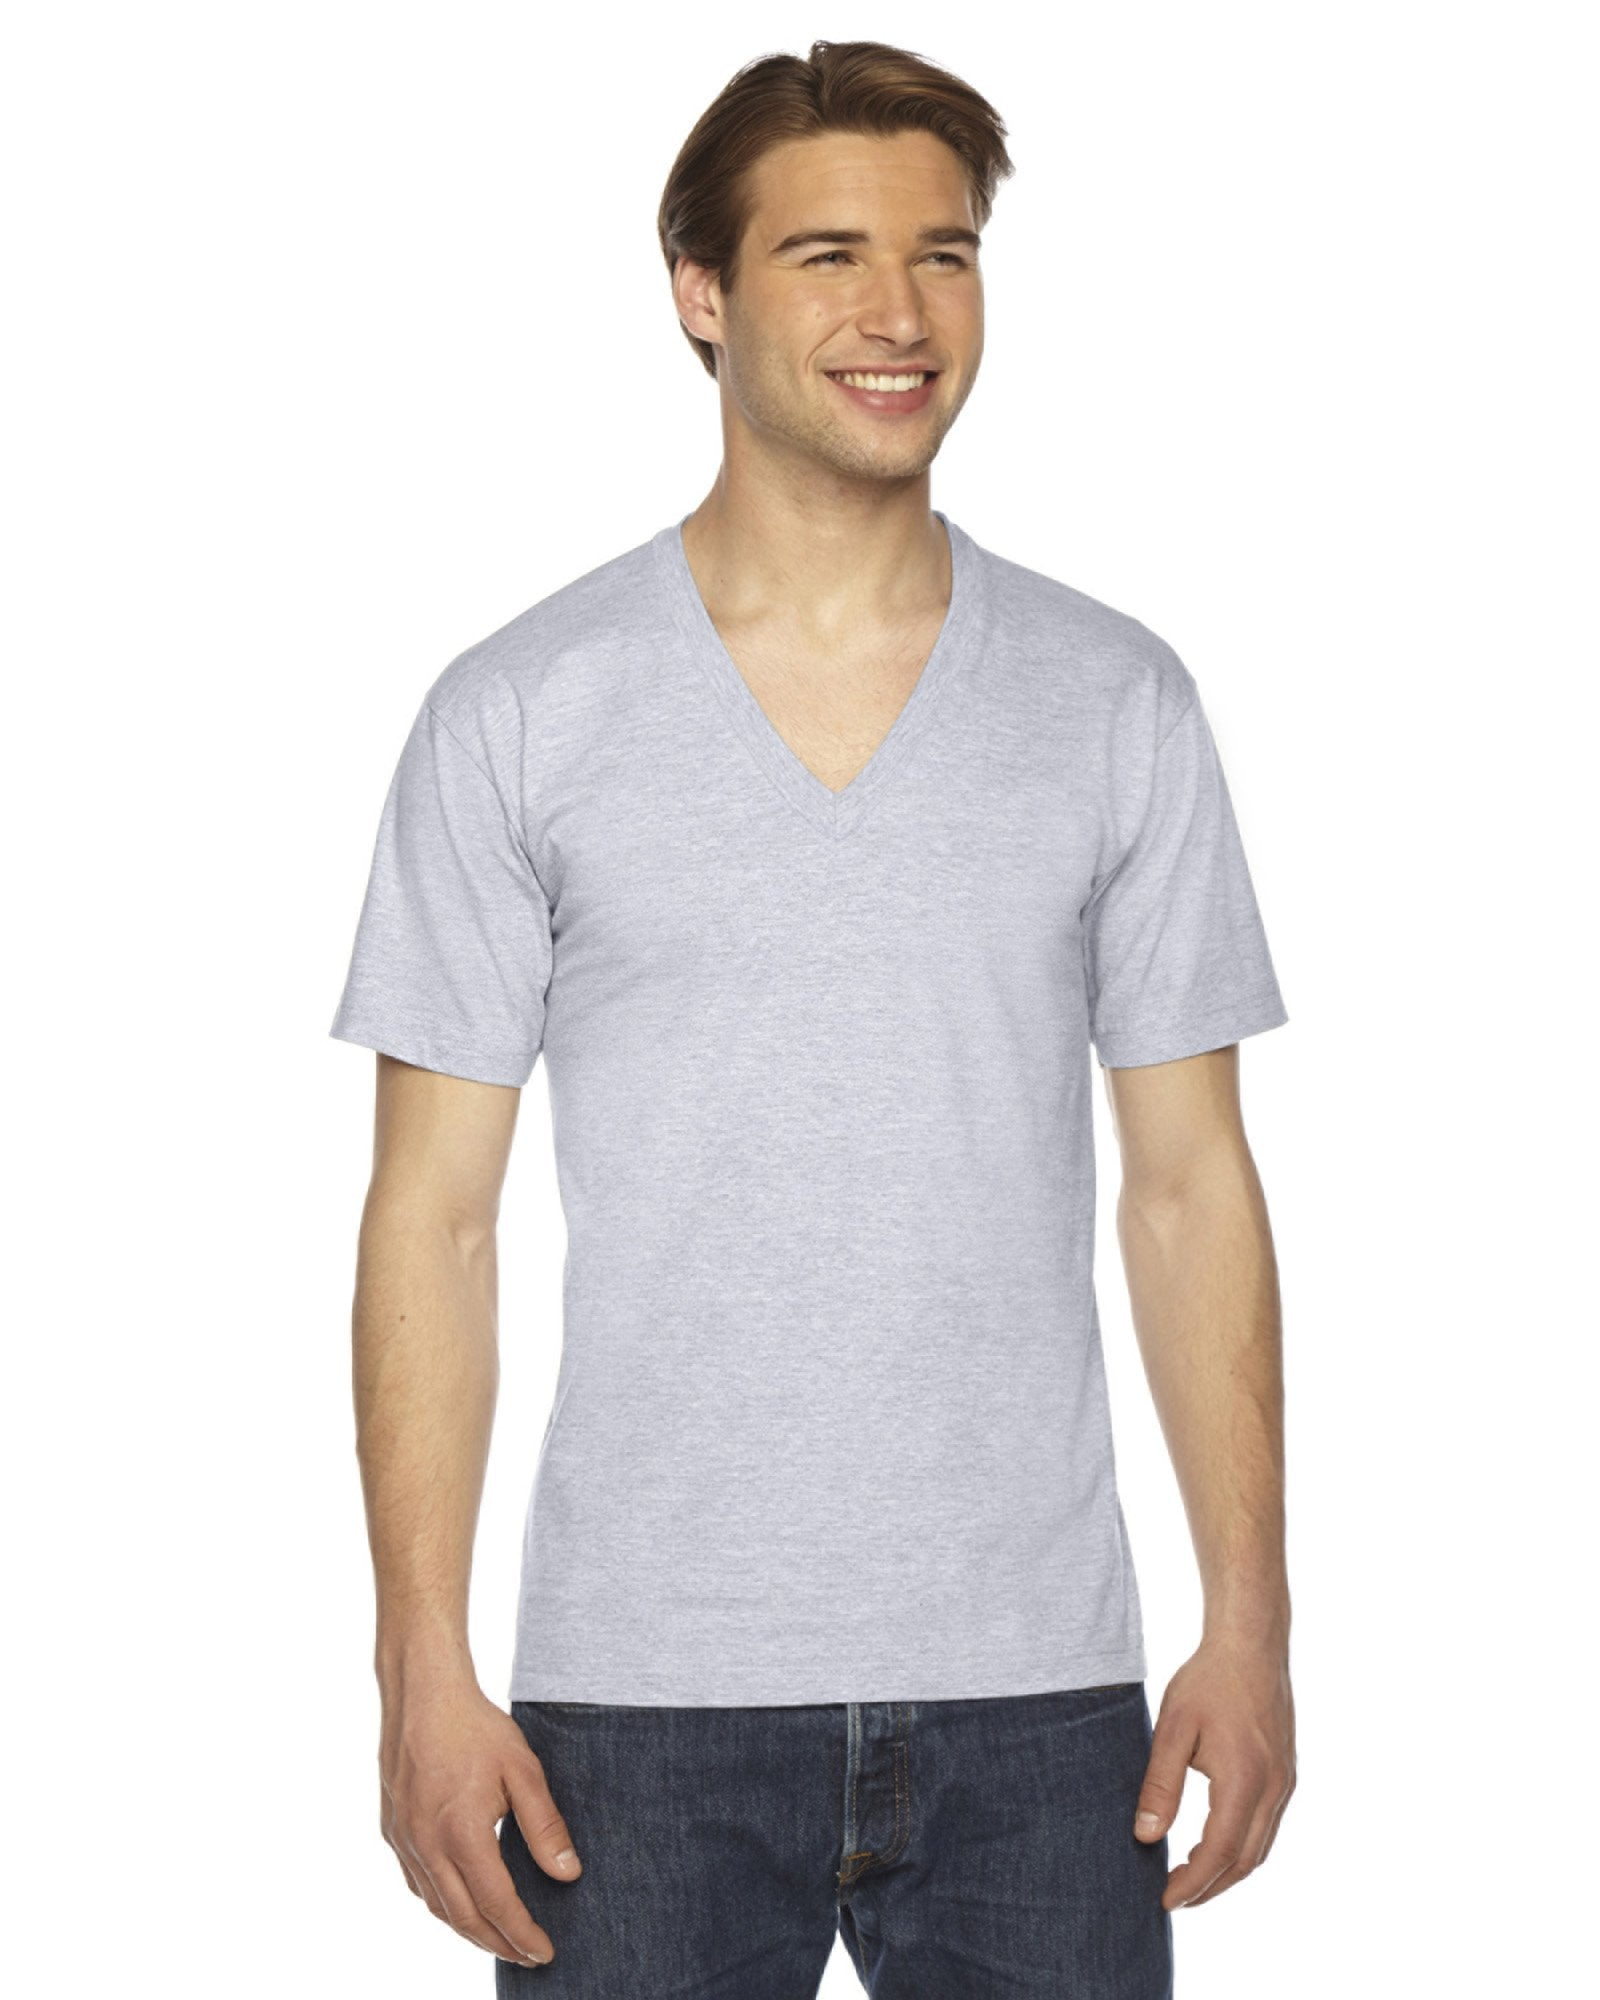 American Apparel - 2456 - Unisex Fine Jersey Short-Sleeve V-Neck